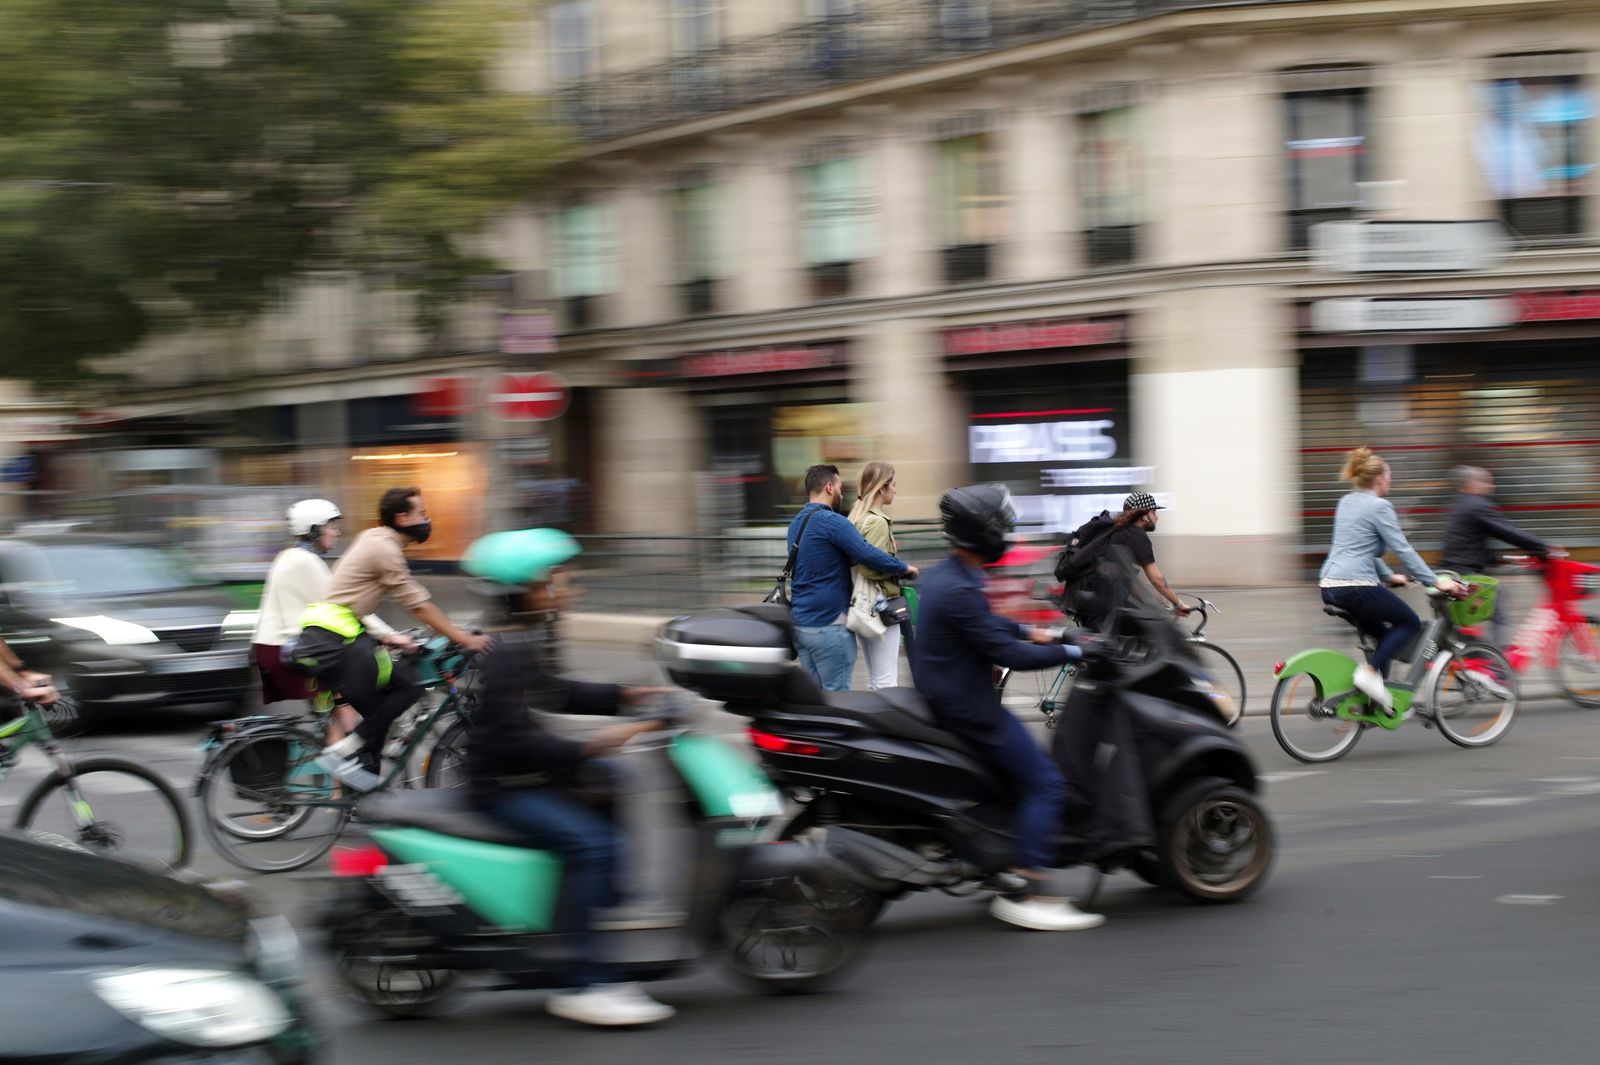 People ride bicycles and scooters in a street of Paris, Friday, Sept. 13, 2019. Paris metro warns over major strike, transport chaos Friday. (AP Photo/Thibault Camus)